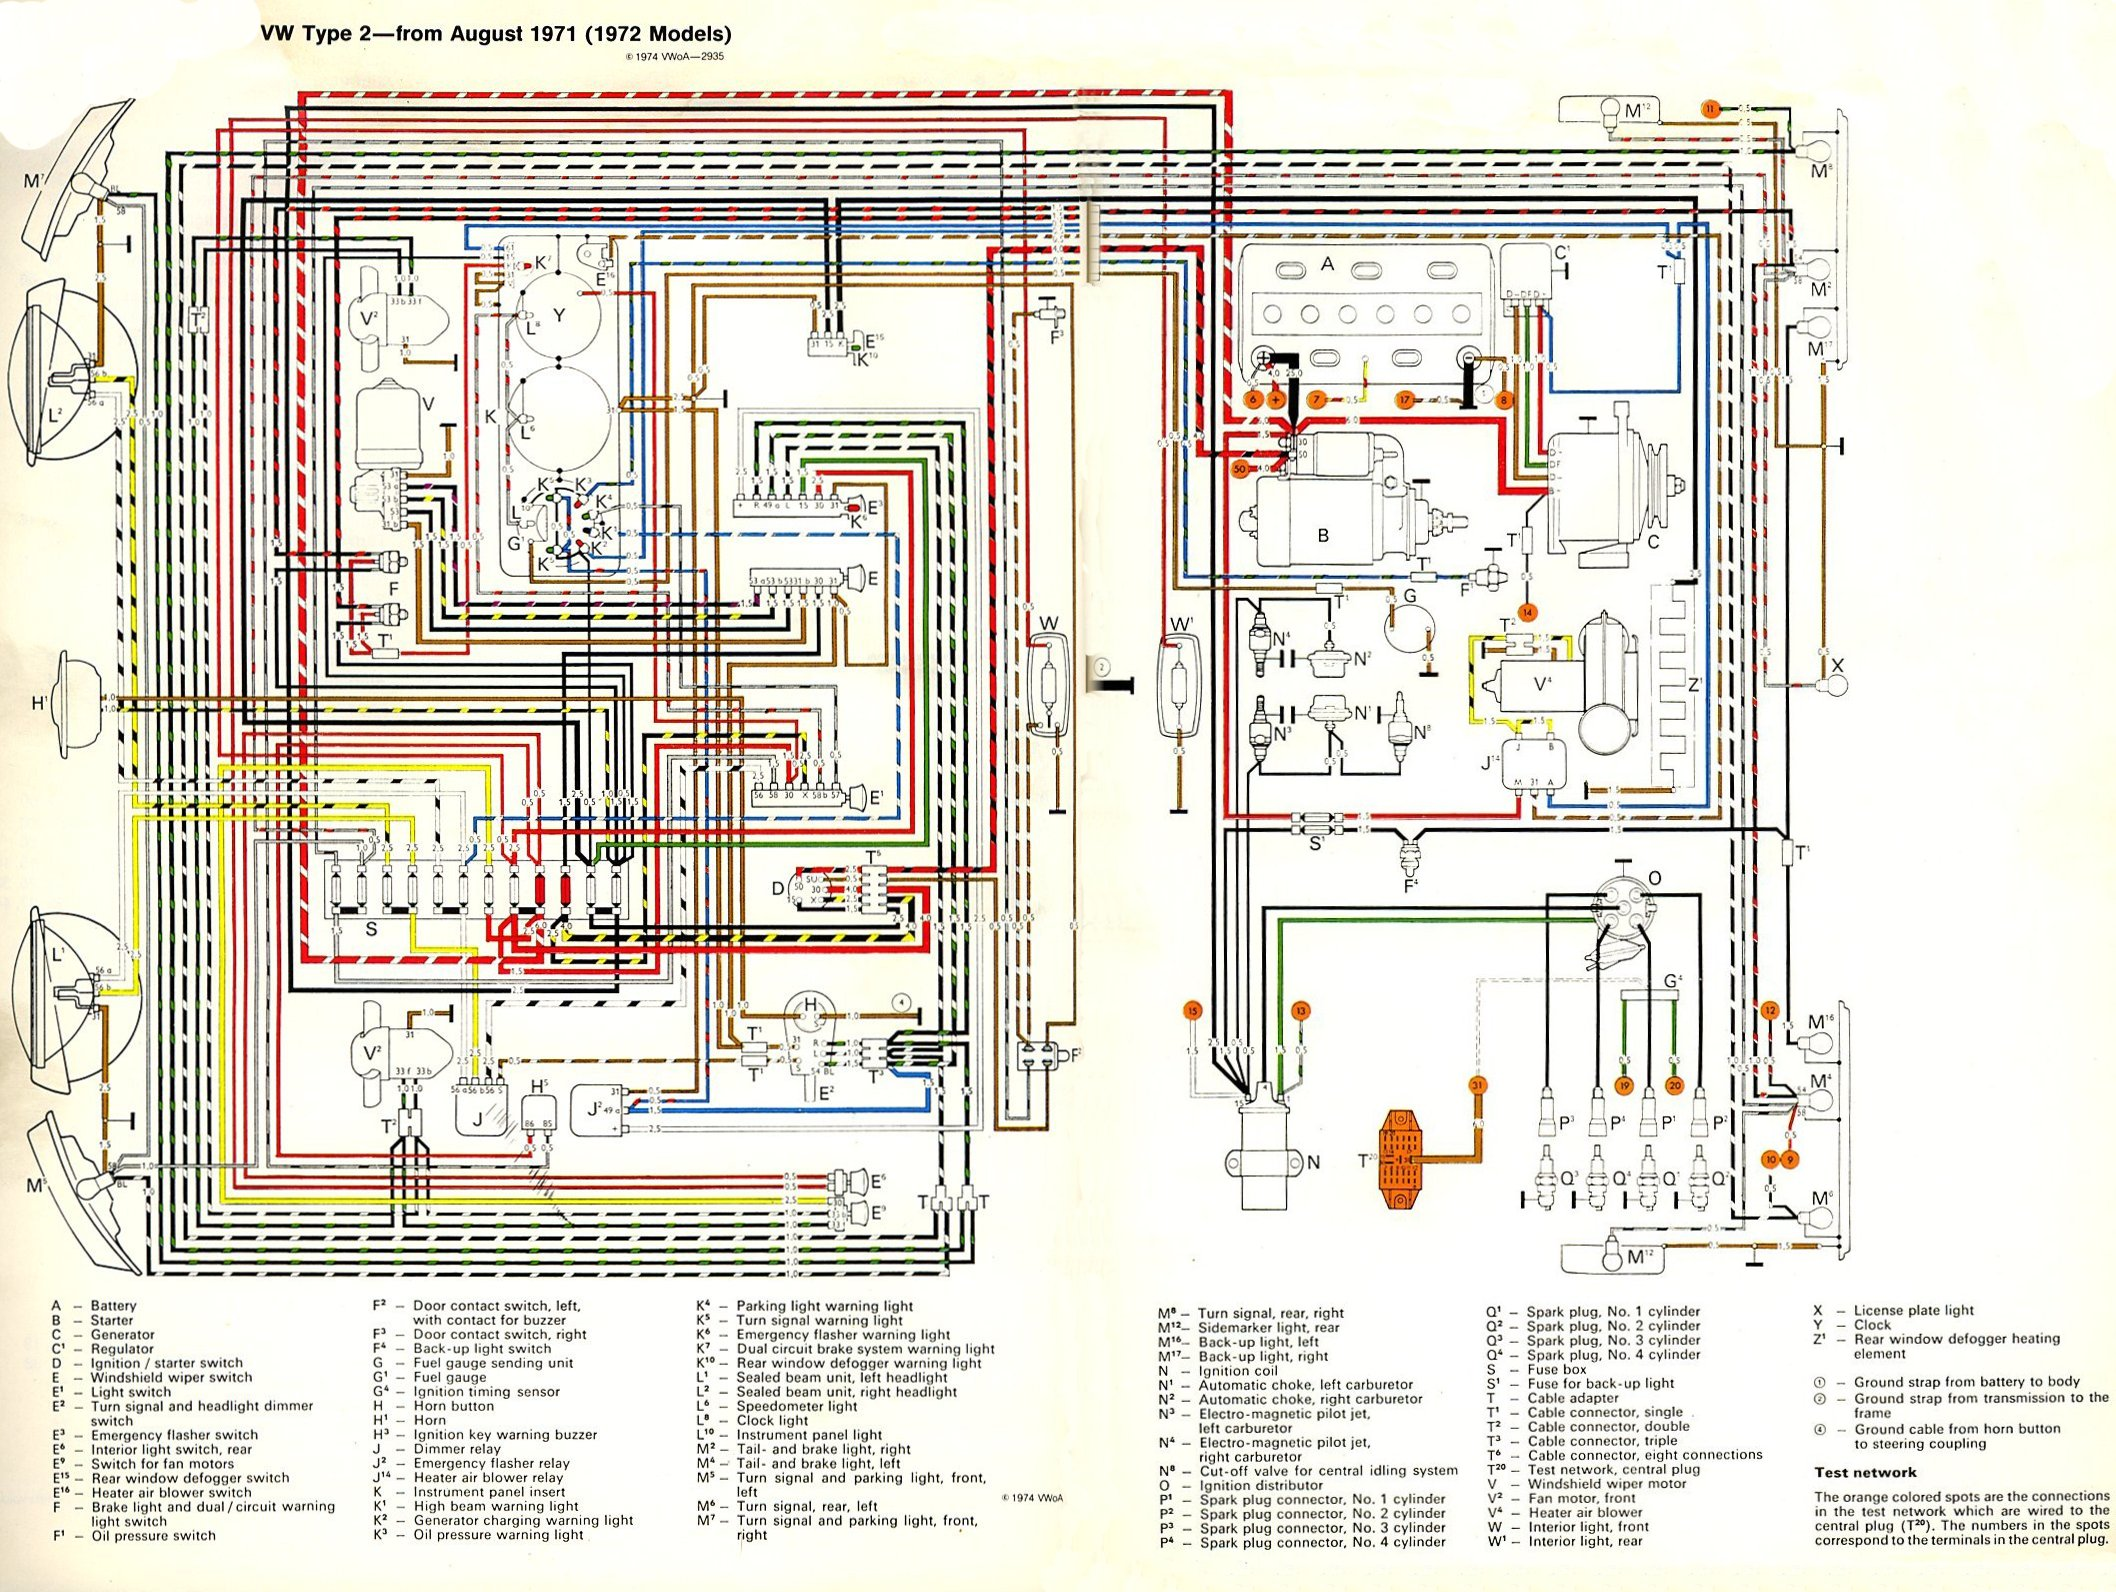 bus_1972_wiring bus_1972_wiring jpg (2116�1592) wire pinterest kombi camper vw t4 fuse box wiring diagram at alyssarenee.co